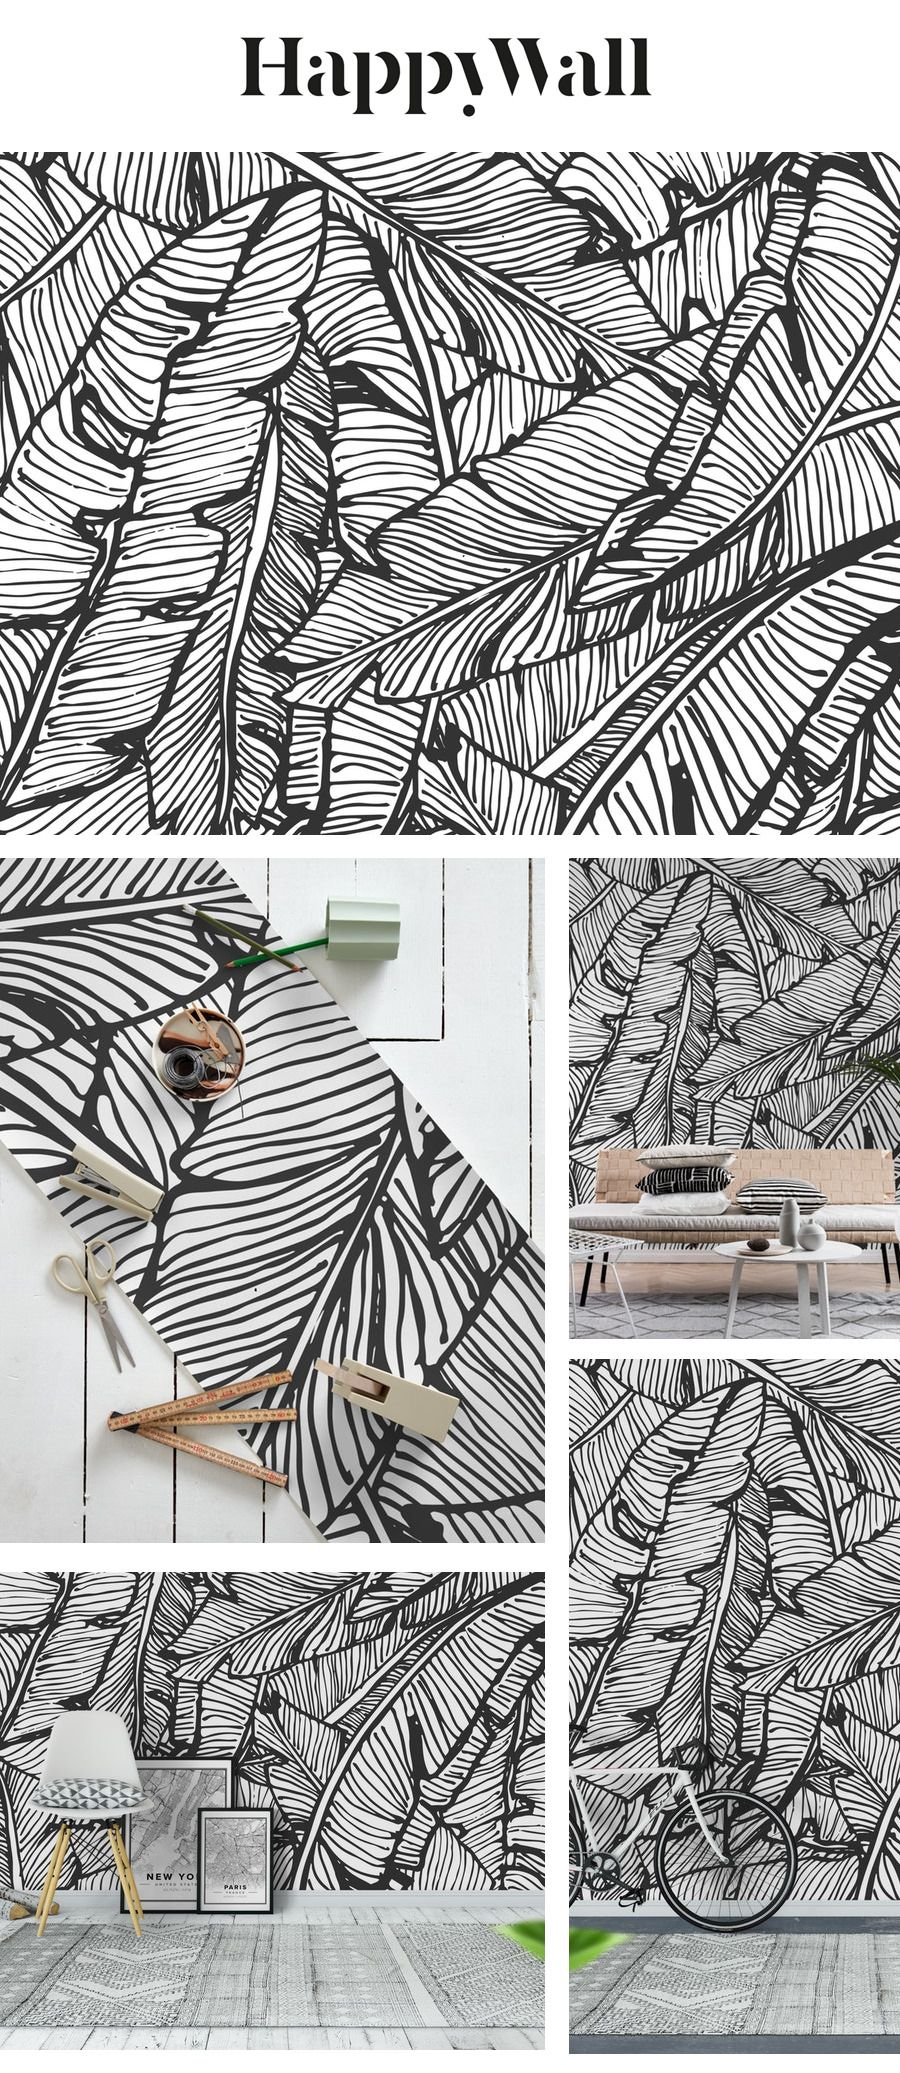 Black And White Jungle Wall mural in 2020 Jungle wall